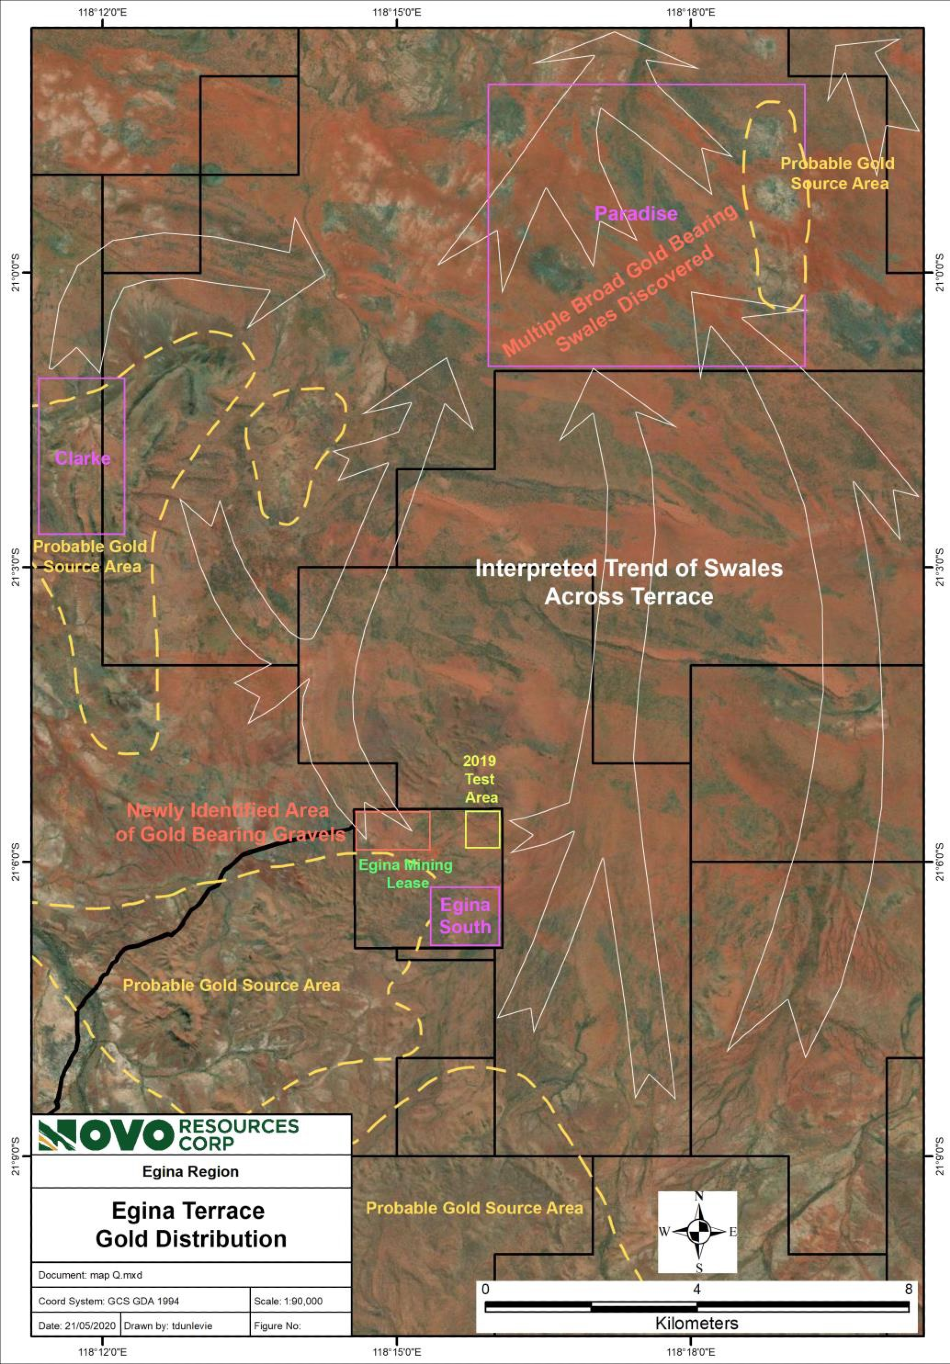 Broad Gold-Bearing Swale Discovered at Novo's Egina Mining Lease